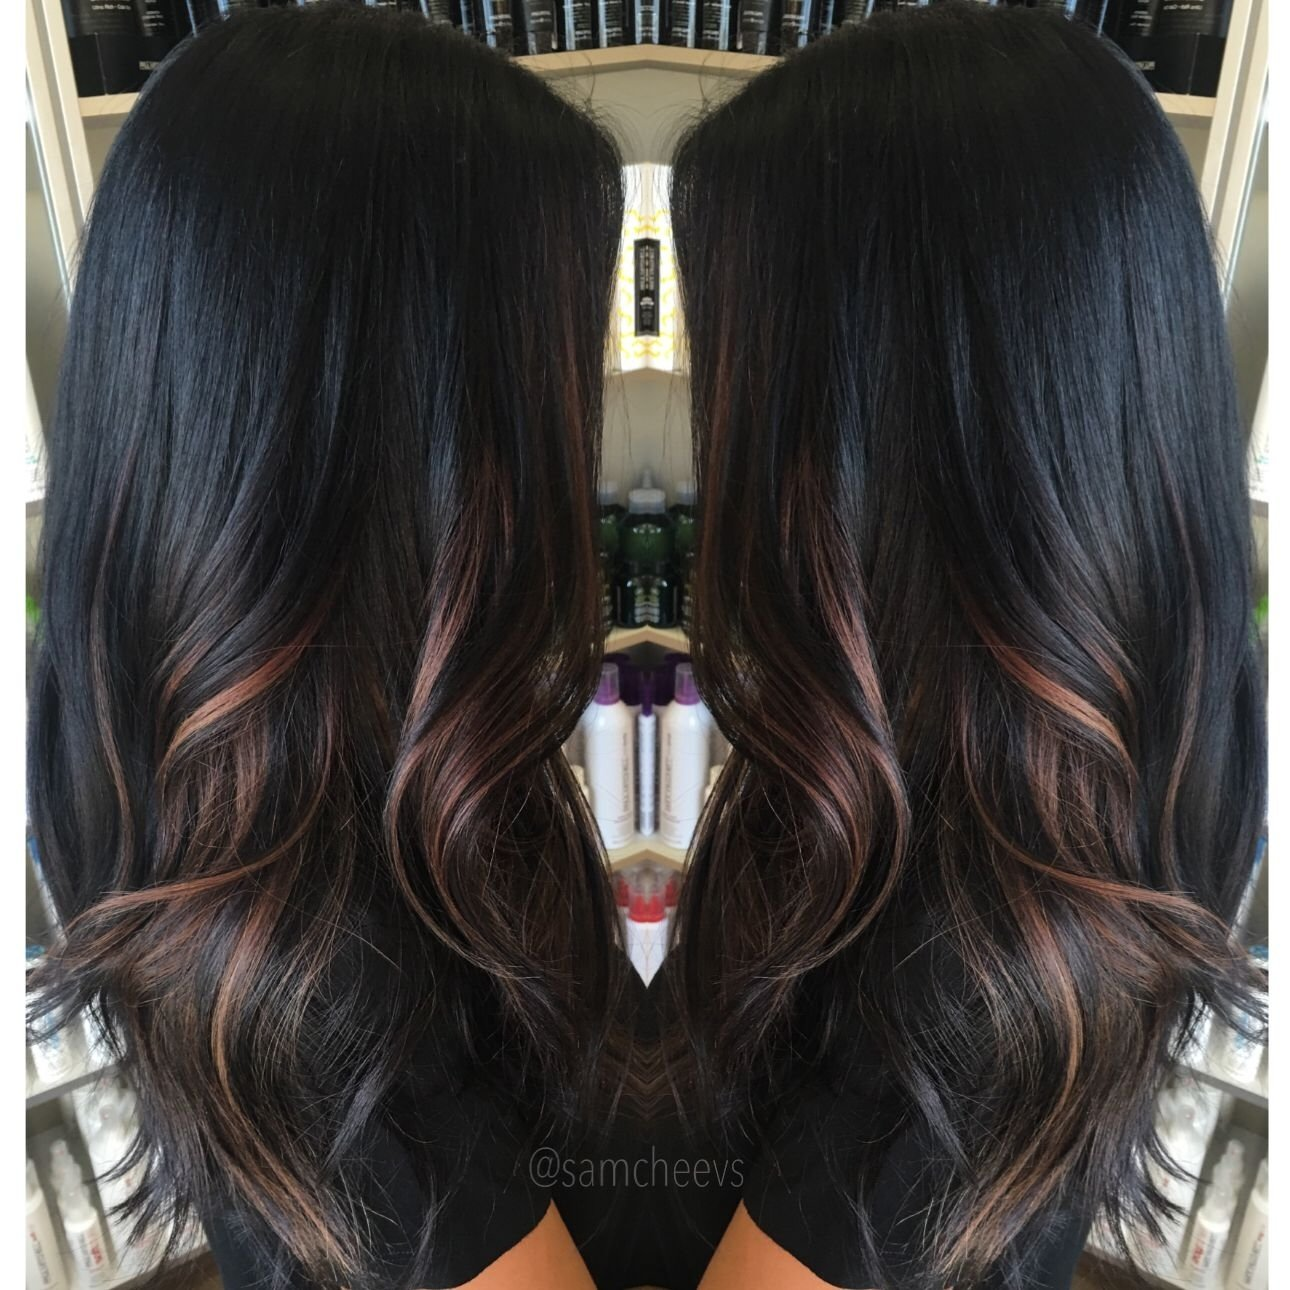 10 Cute Hair Color Ideas For Dark Hair With Highlights 2019